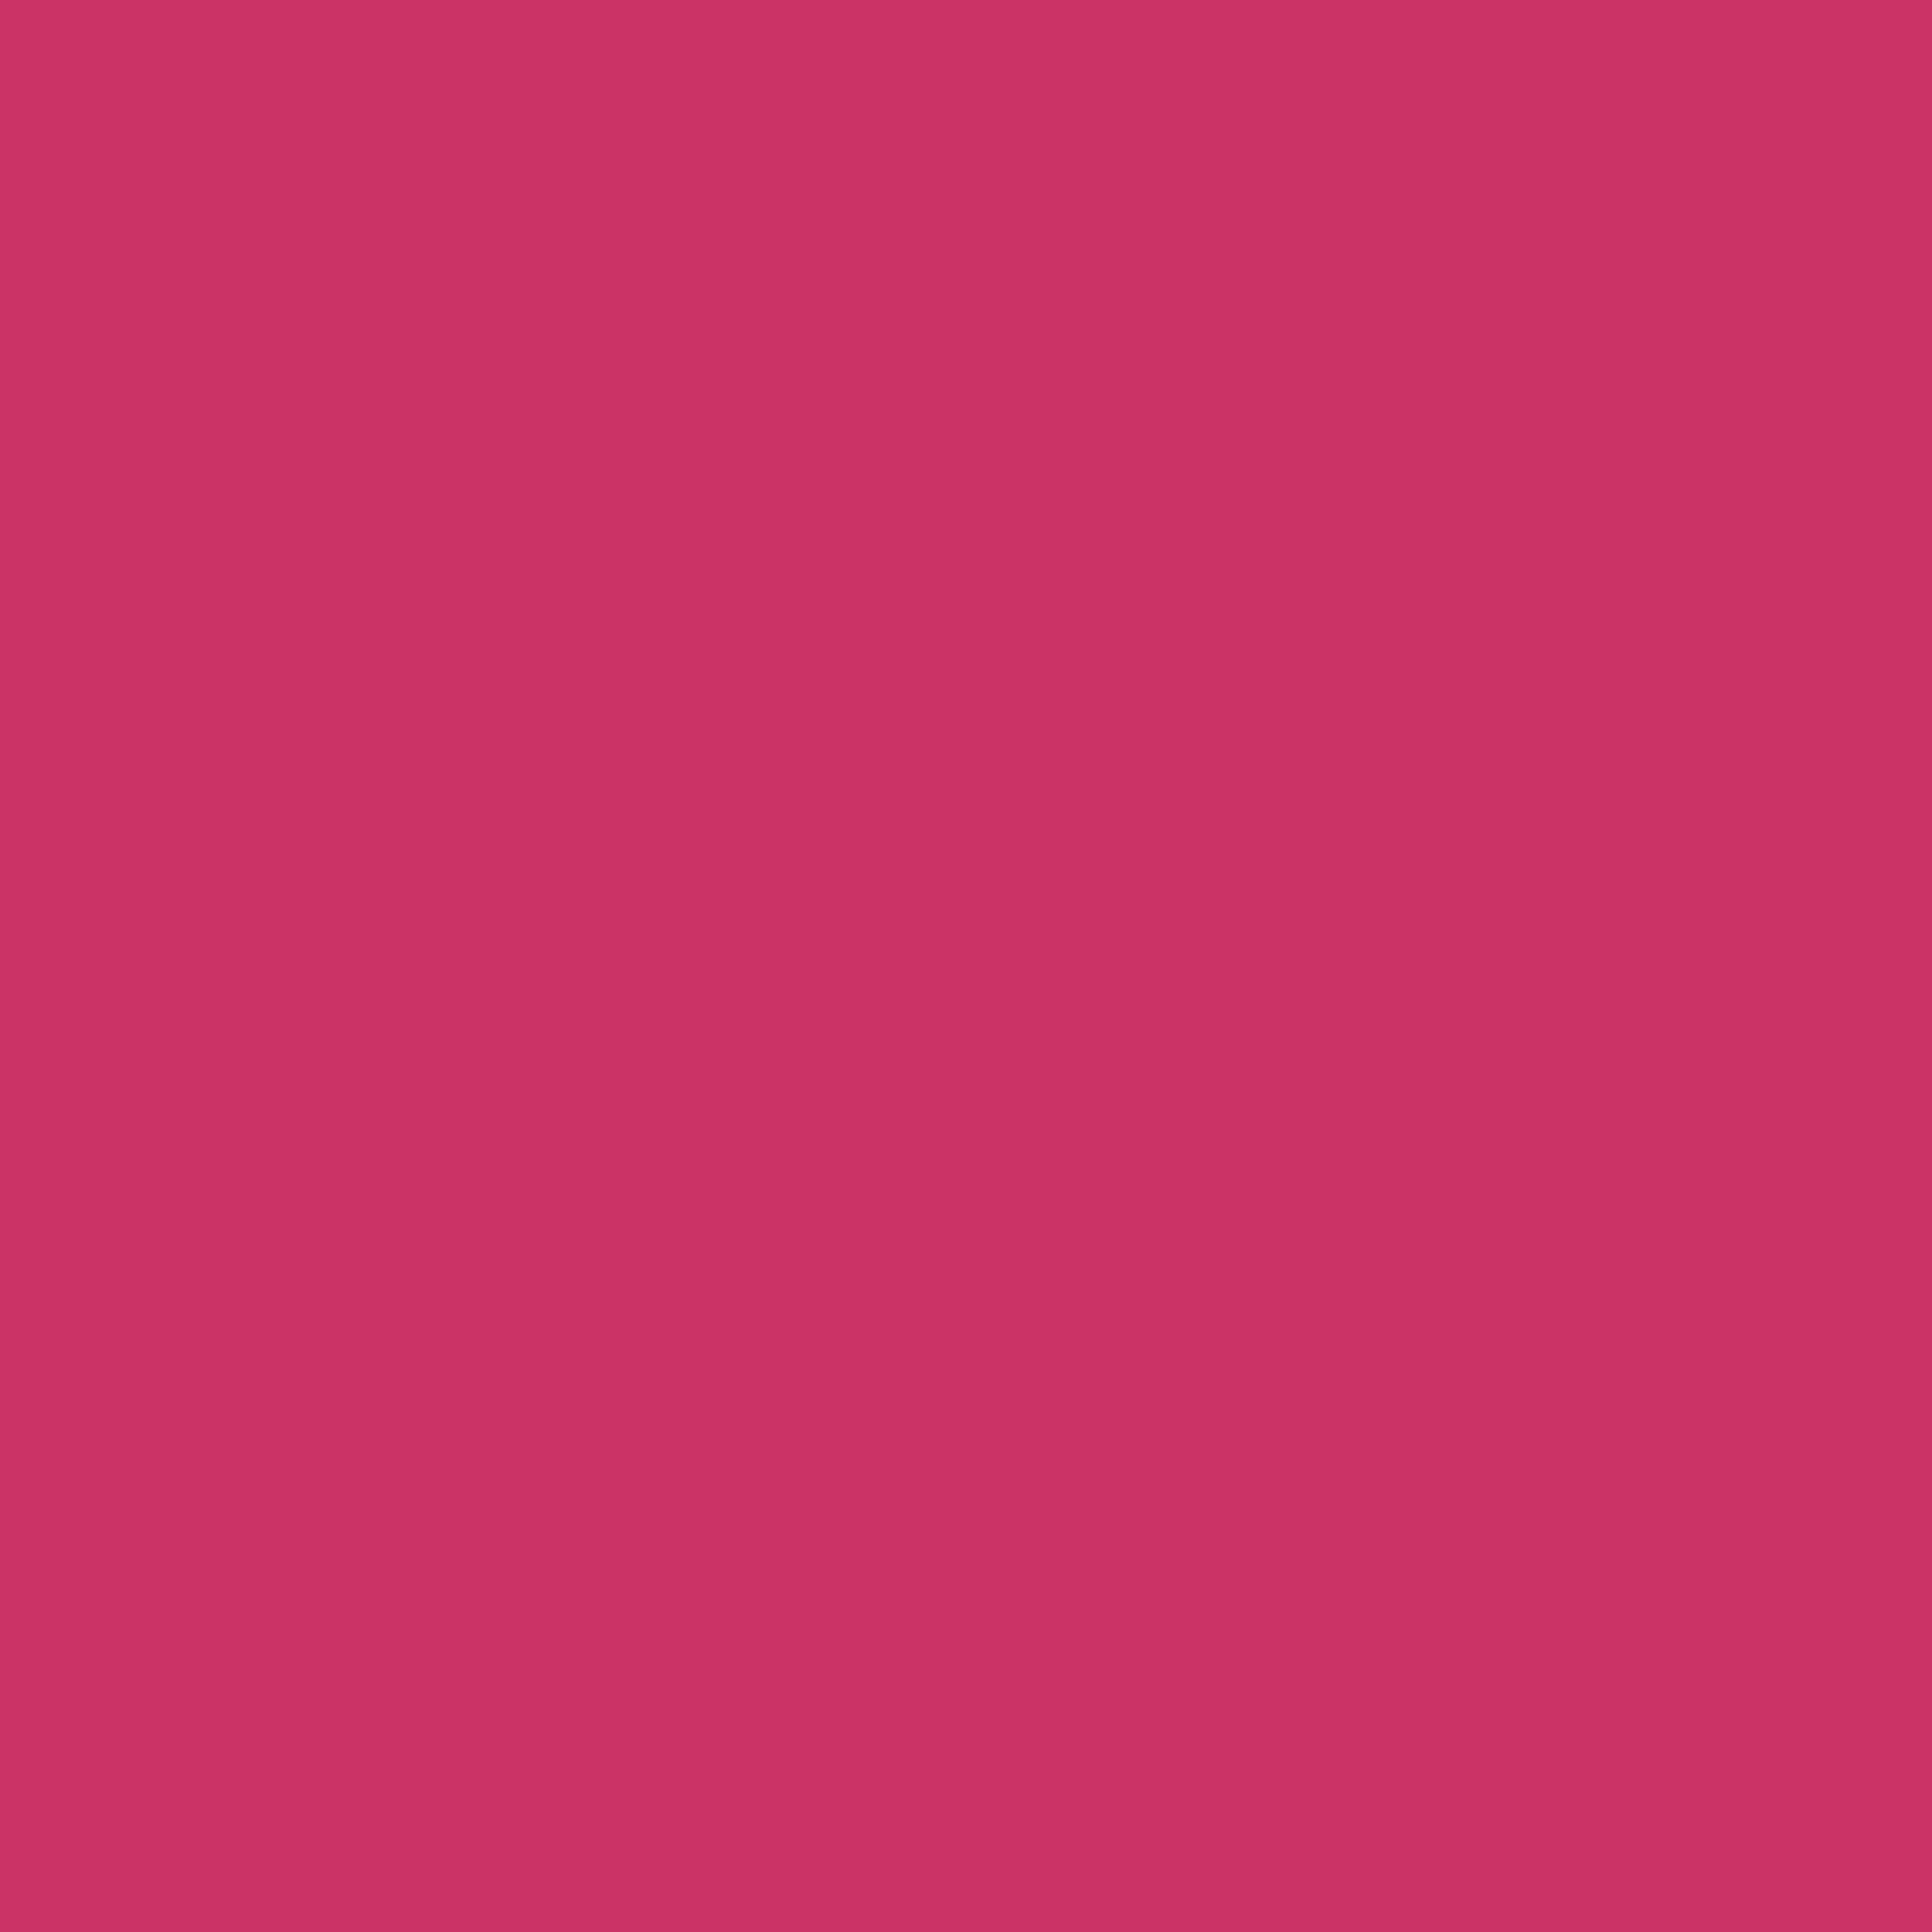 2732x2732 Steel Pink Solid Color Background